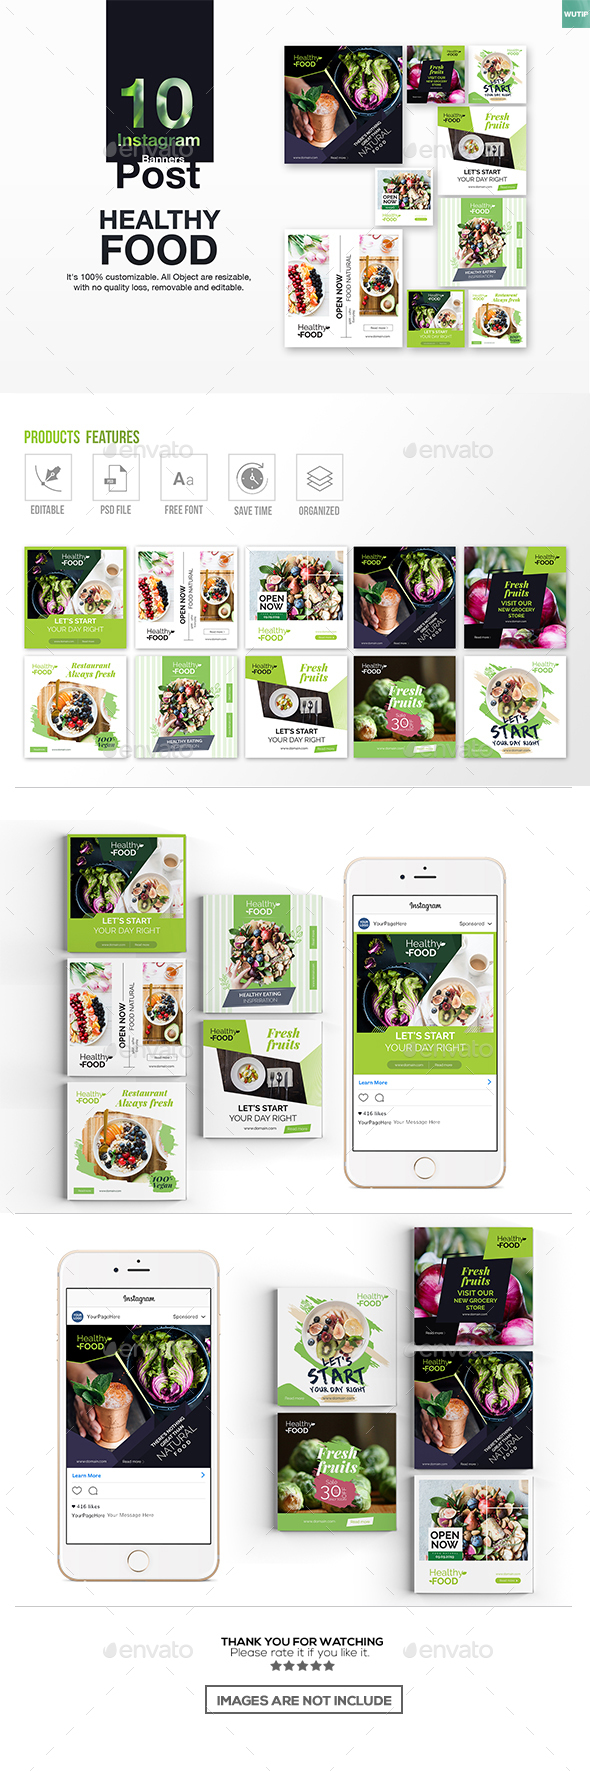 10 Instagram Post Banner-Healthy Food - Miscellaneous Social Media